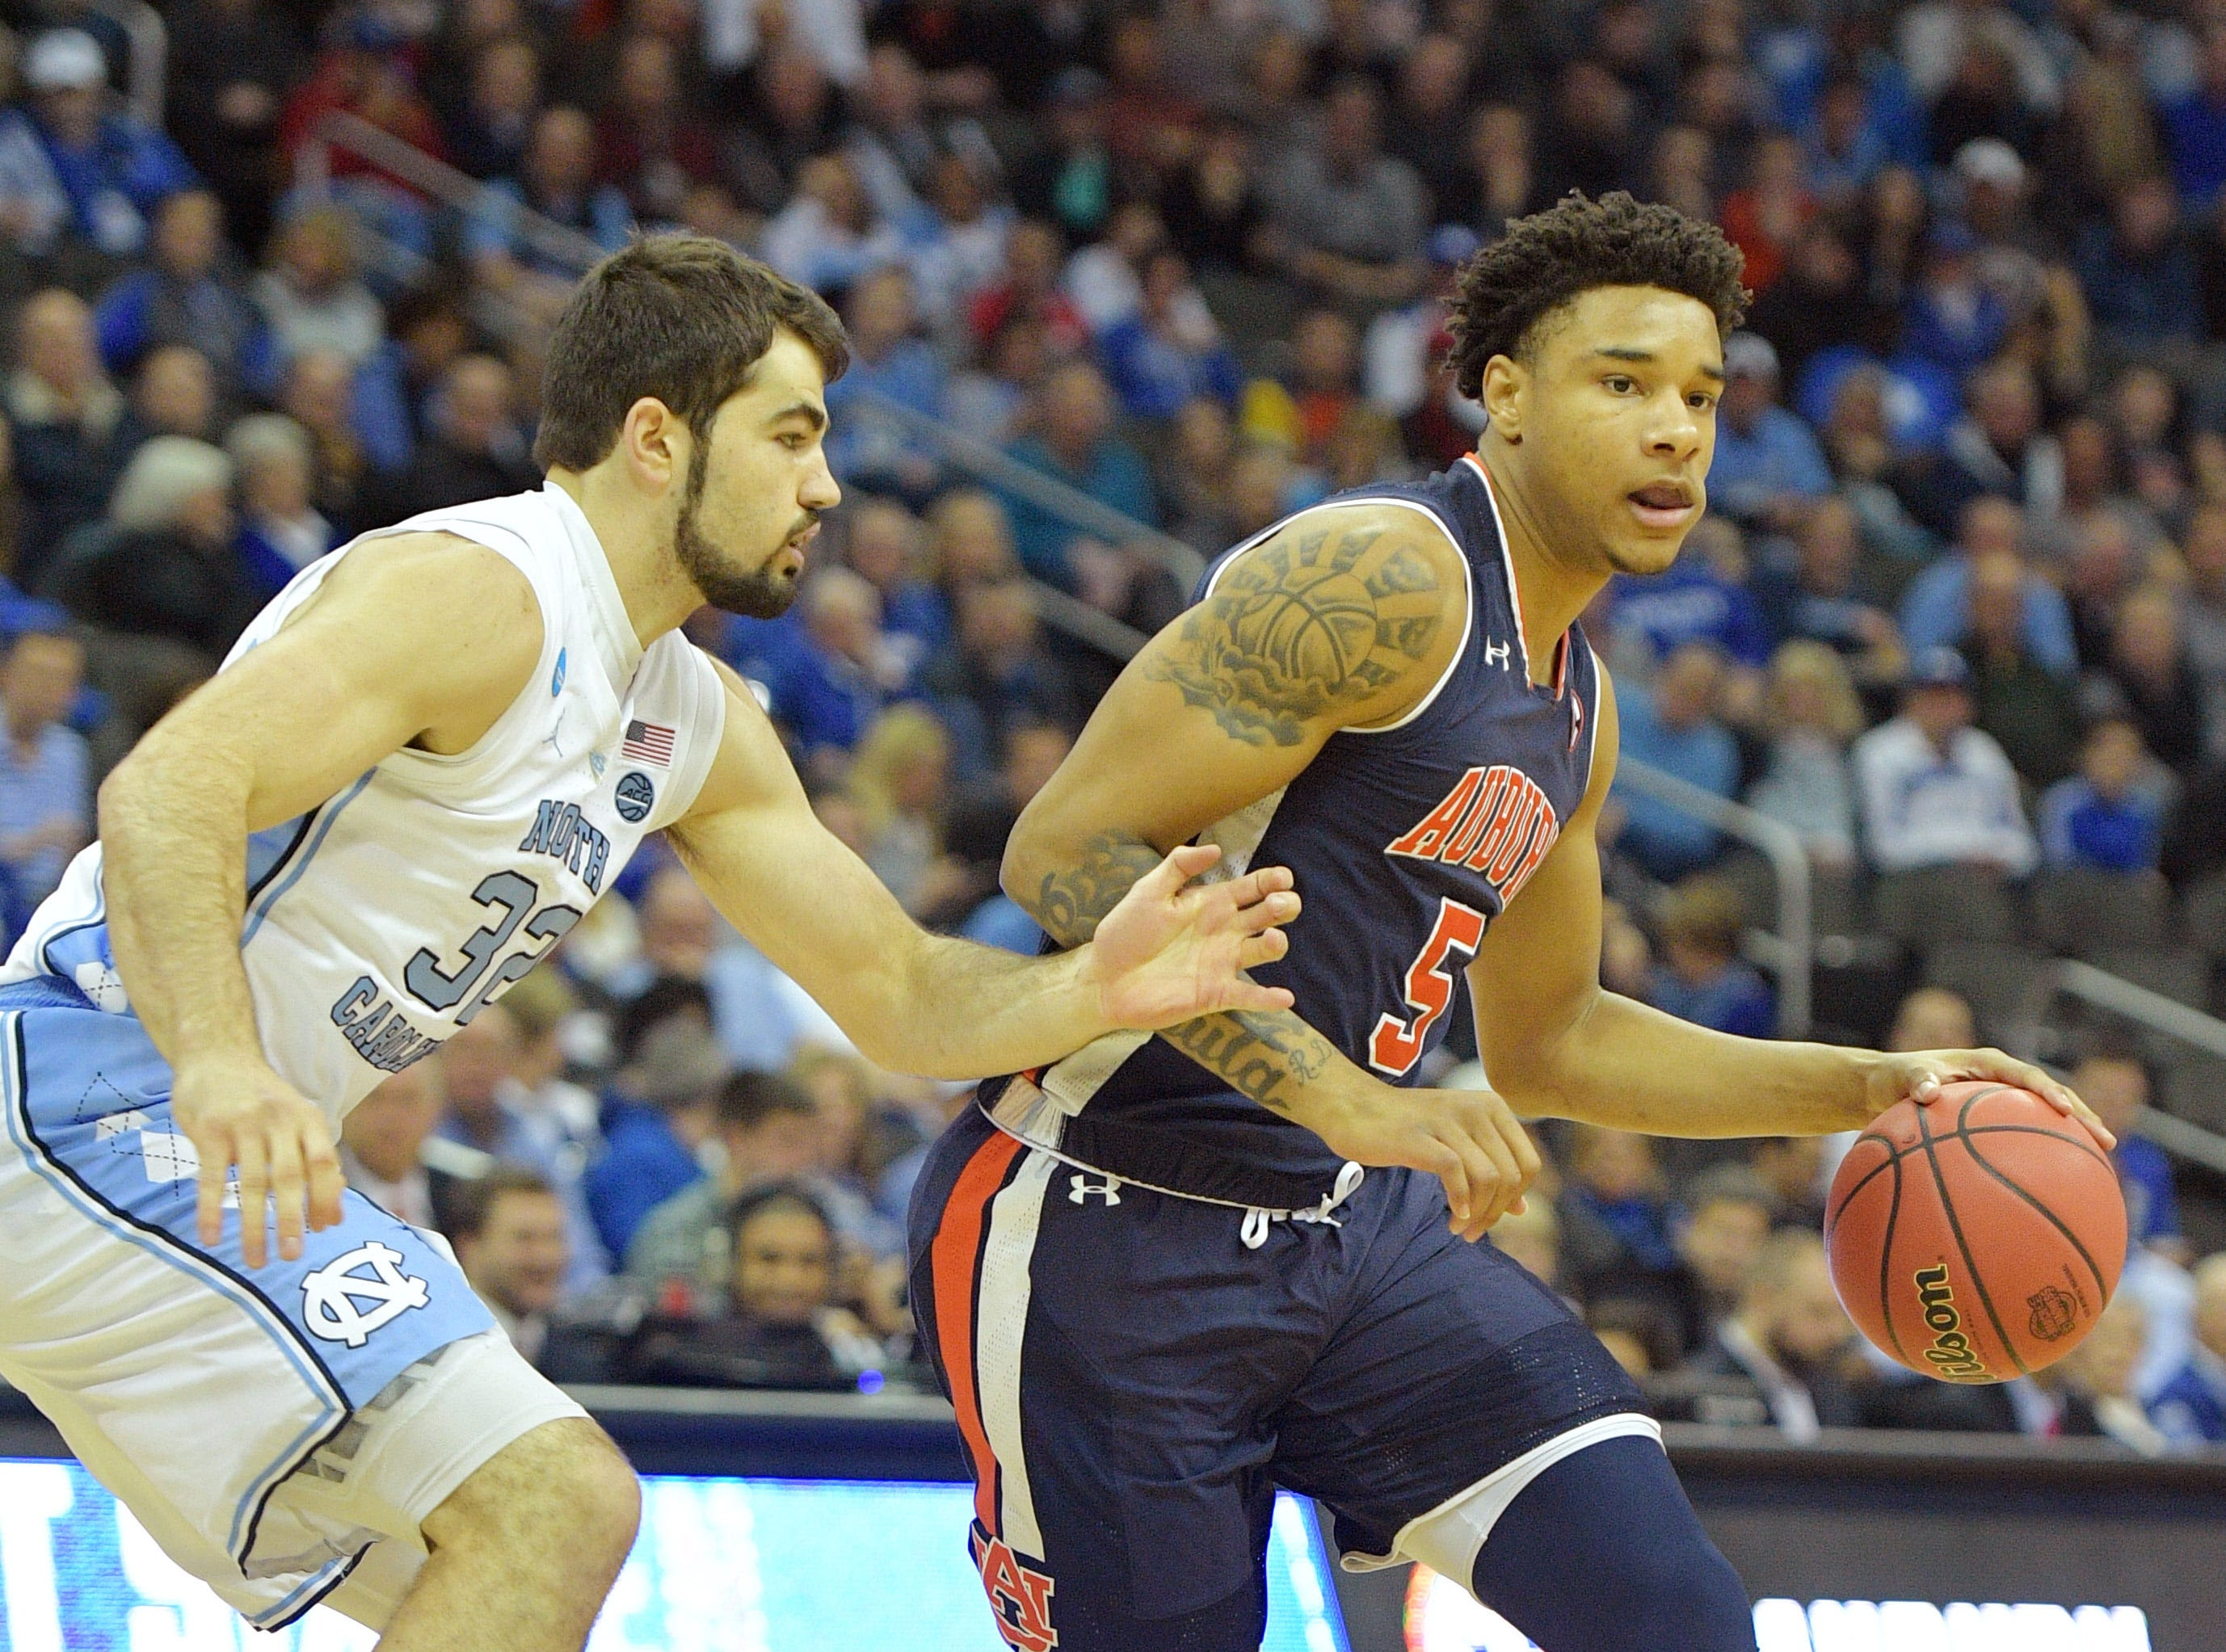 Mar 29, 2019; Kansas City, MO, United States; Auburn Tigers forward Chuma Okeke (5) controls the ball against North Carolina Tar Heels forward Luke Maye (32) during the first half in the semifinals of the midwest regional of the 2019 NCAA Tournament at Sprint Center. Mandatory Credit: Denny Medley-USA TODAY Sports